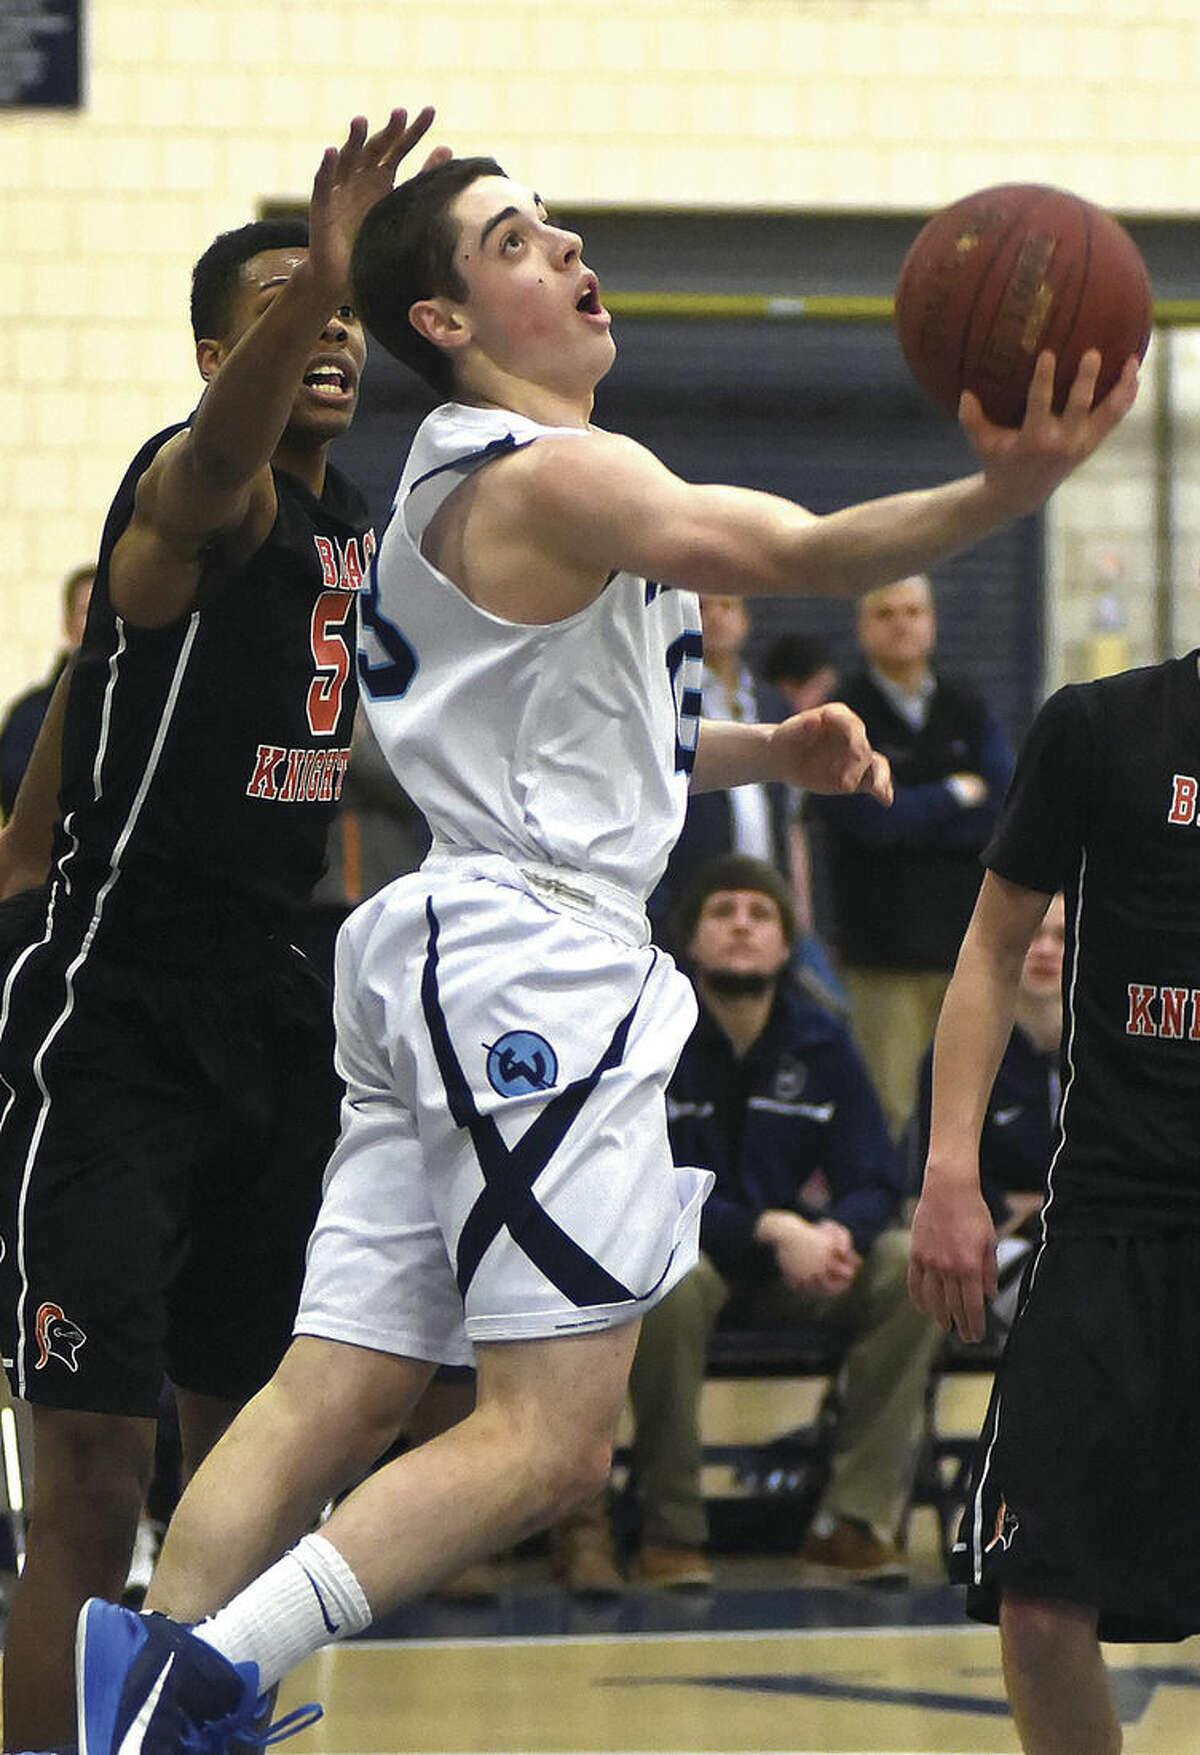 Hour photo/John Nash Wilton's Matt Shifrin, seen here in action against Stamford earlier this season, became the first Warriors boys basketball player to break the 1,000-point scoring barrier on Wednesday night.